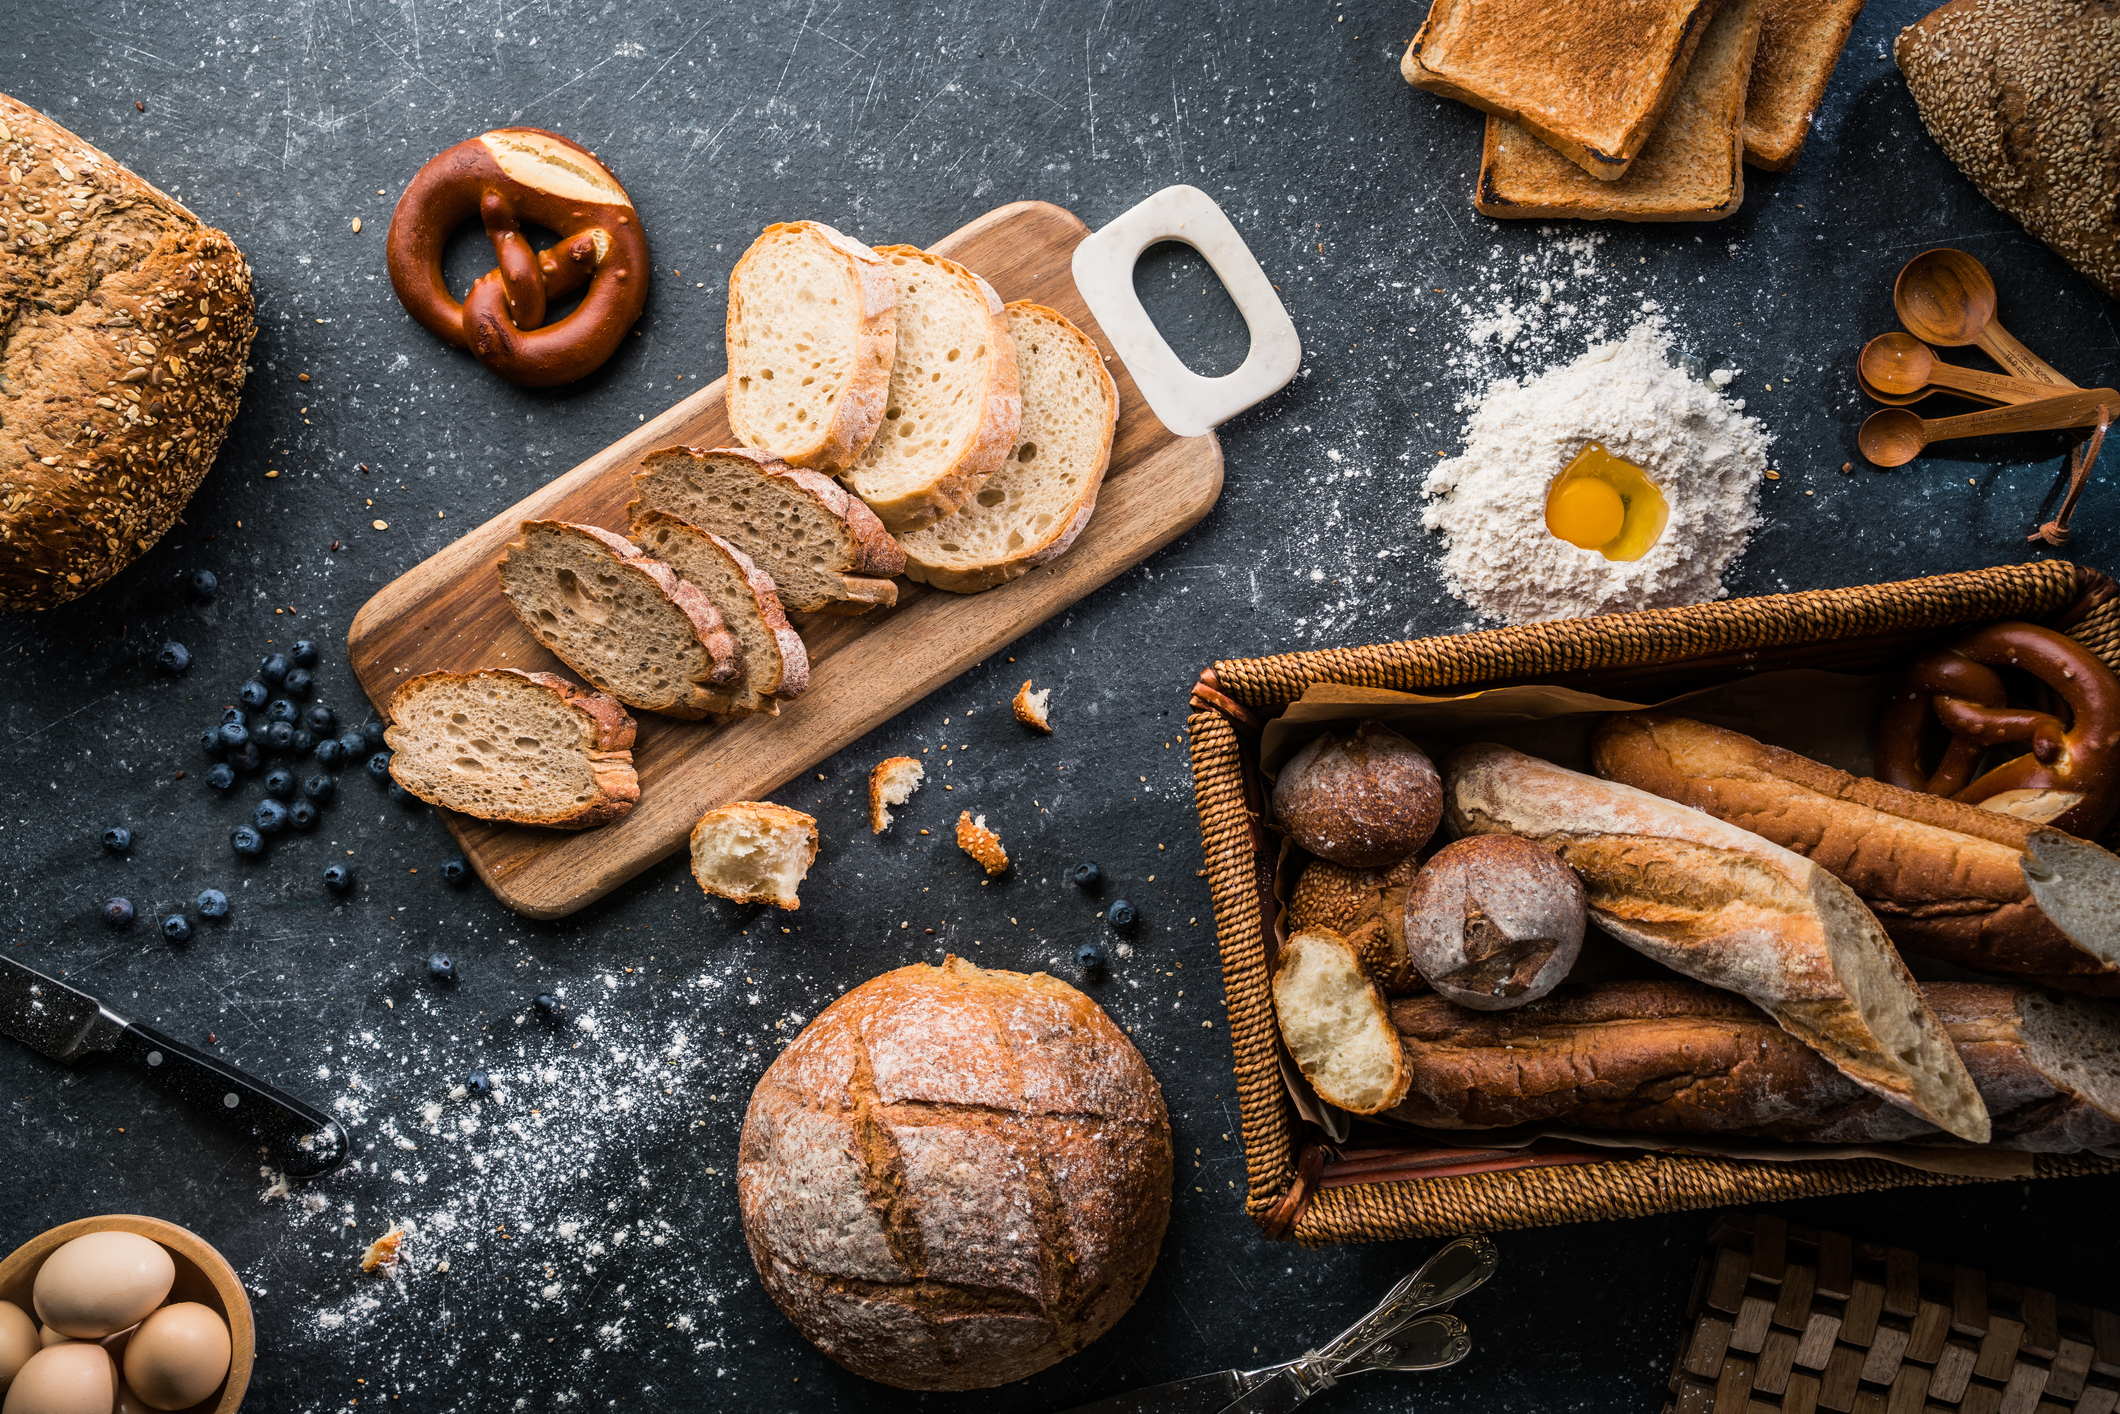 freshly-baked-bread-on-wooden-tablejpg